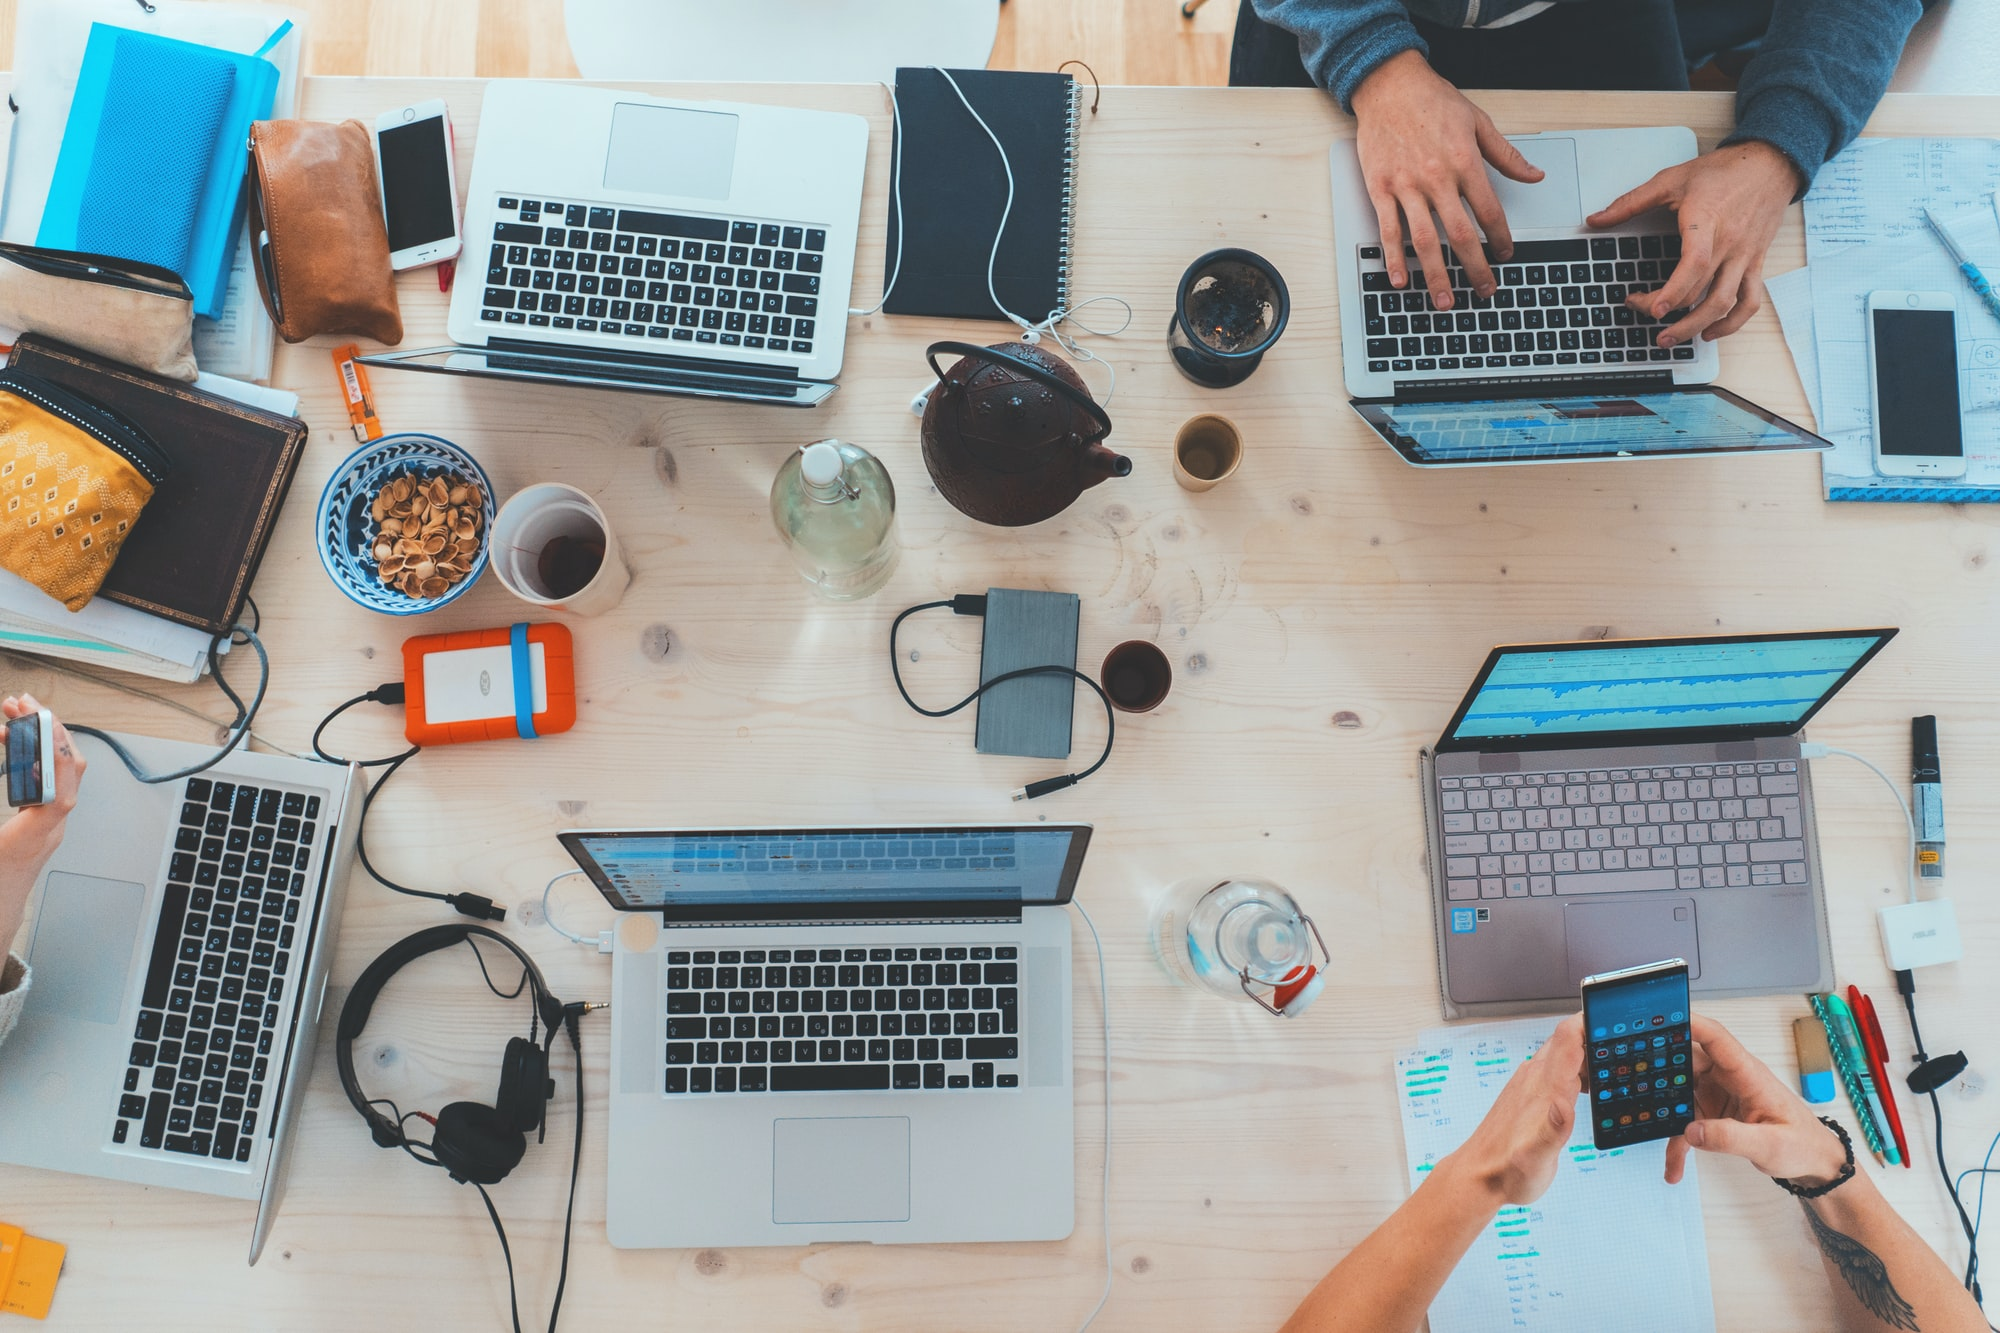 10 Reasons Your Marketing Team Needs this Transcription Software